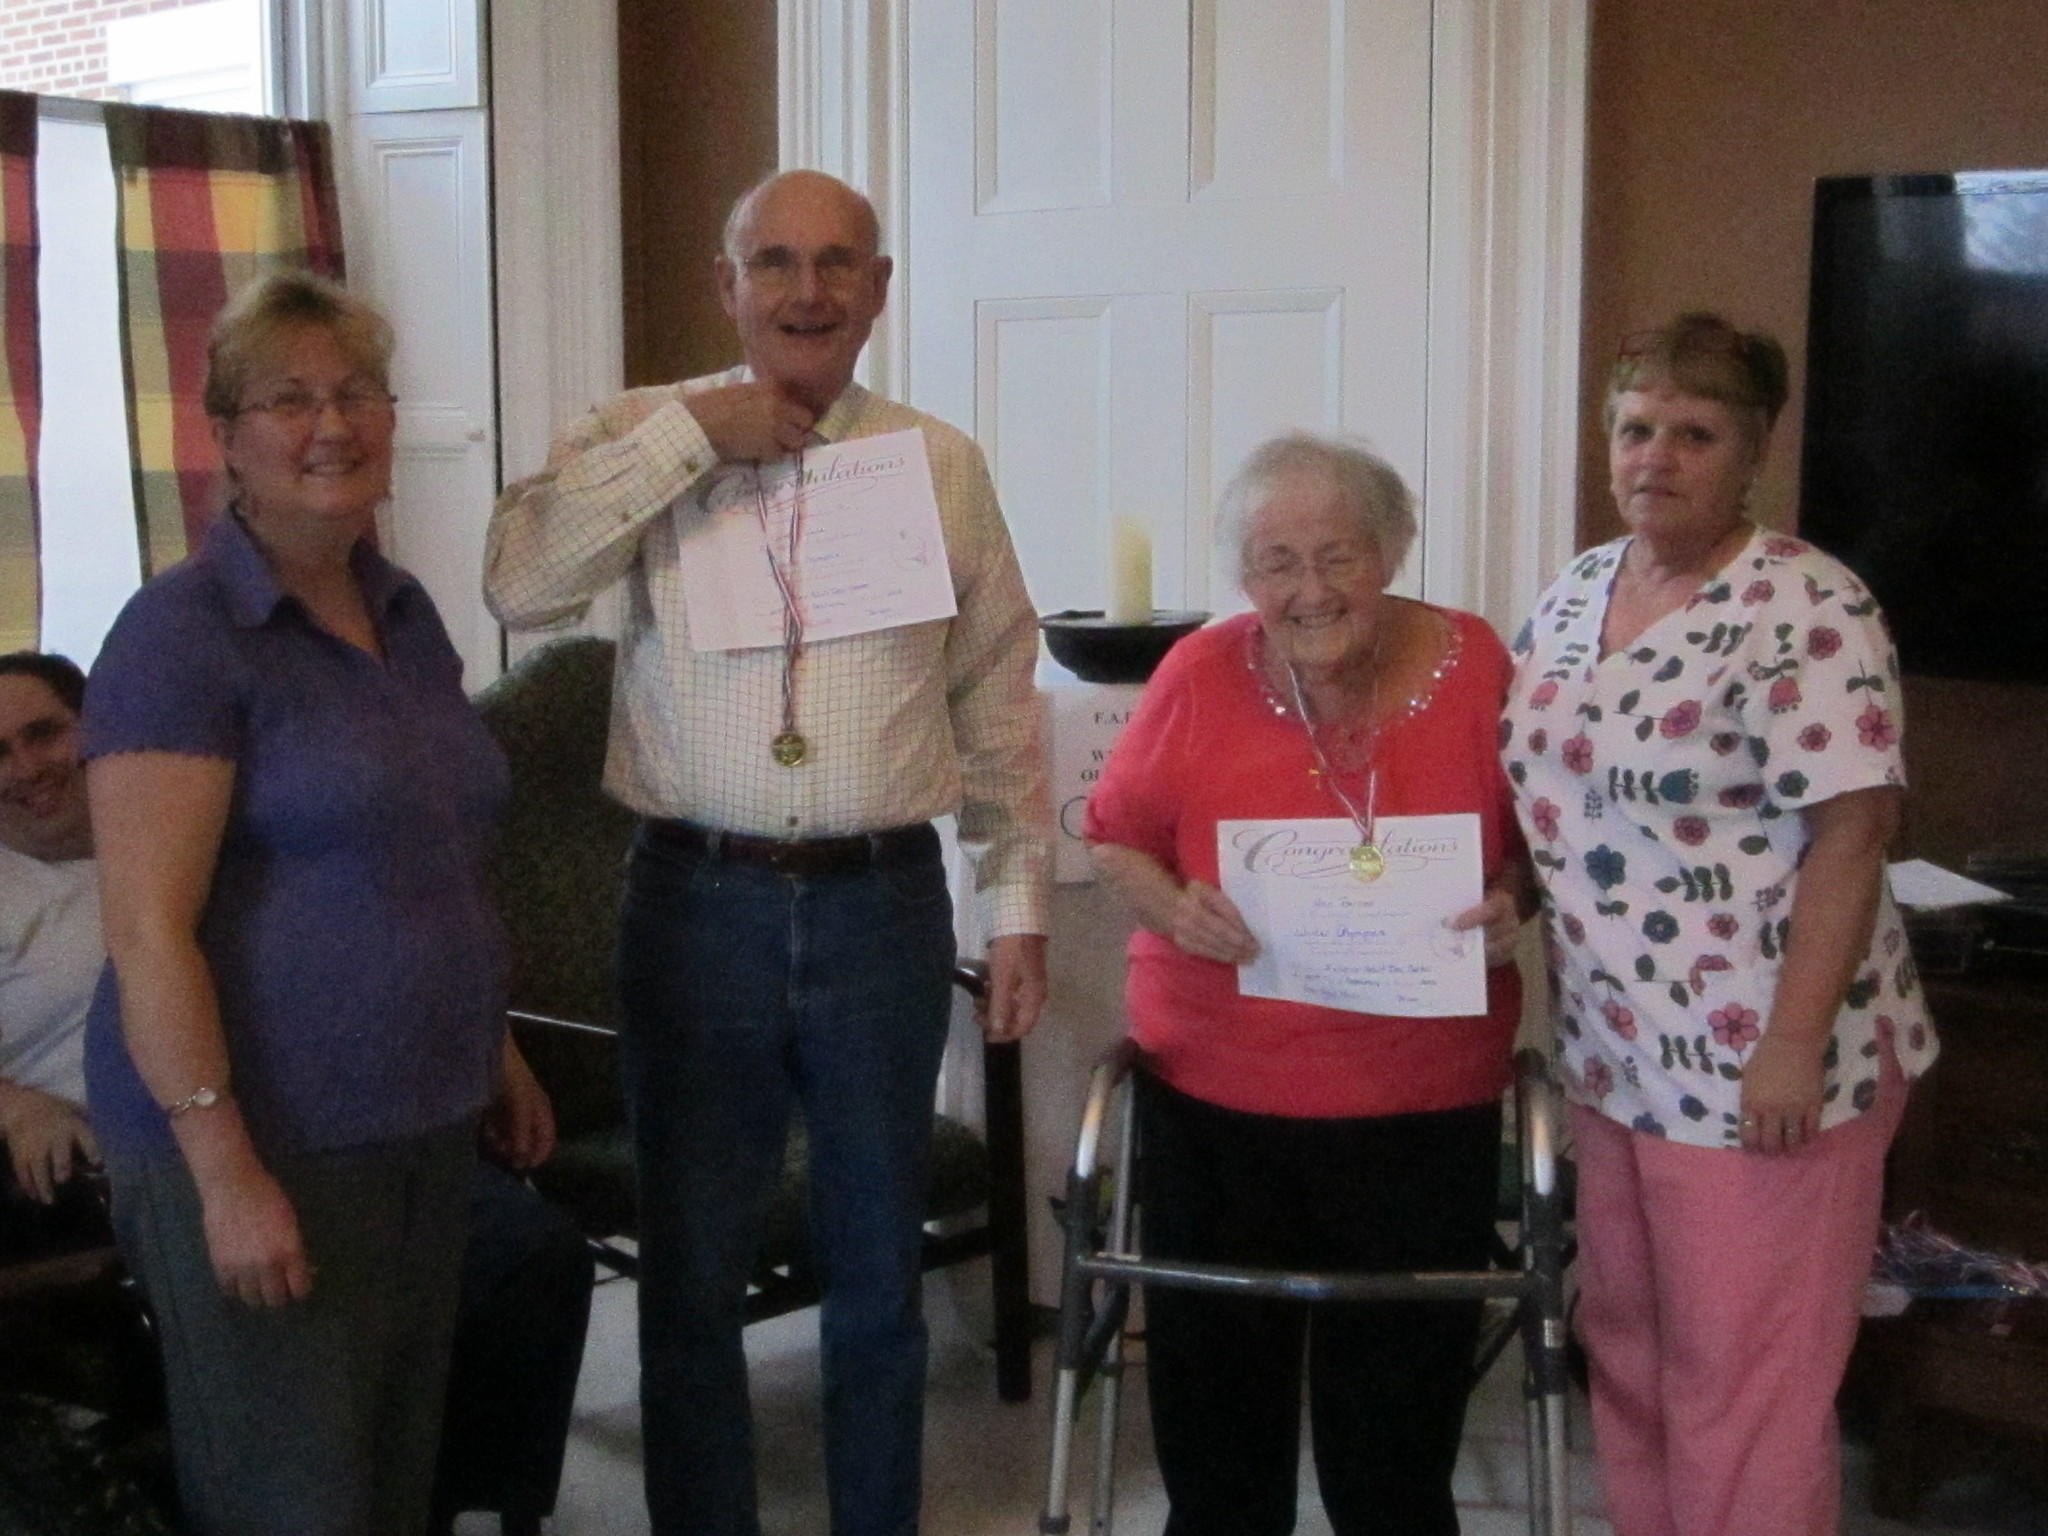 Laurie Bursztyn and Susan Reali award medals and certificates at the Felician Adult Day Center.